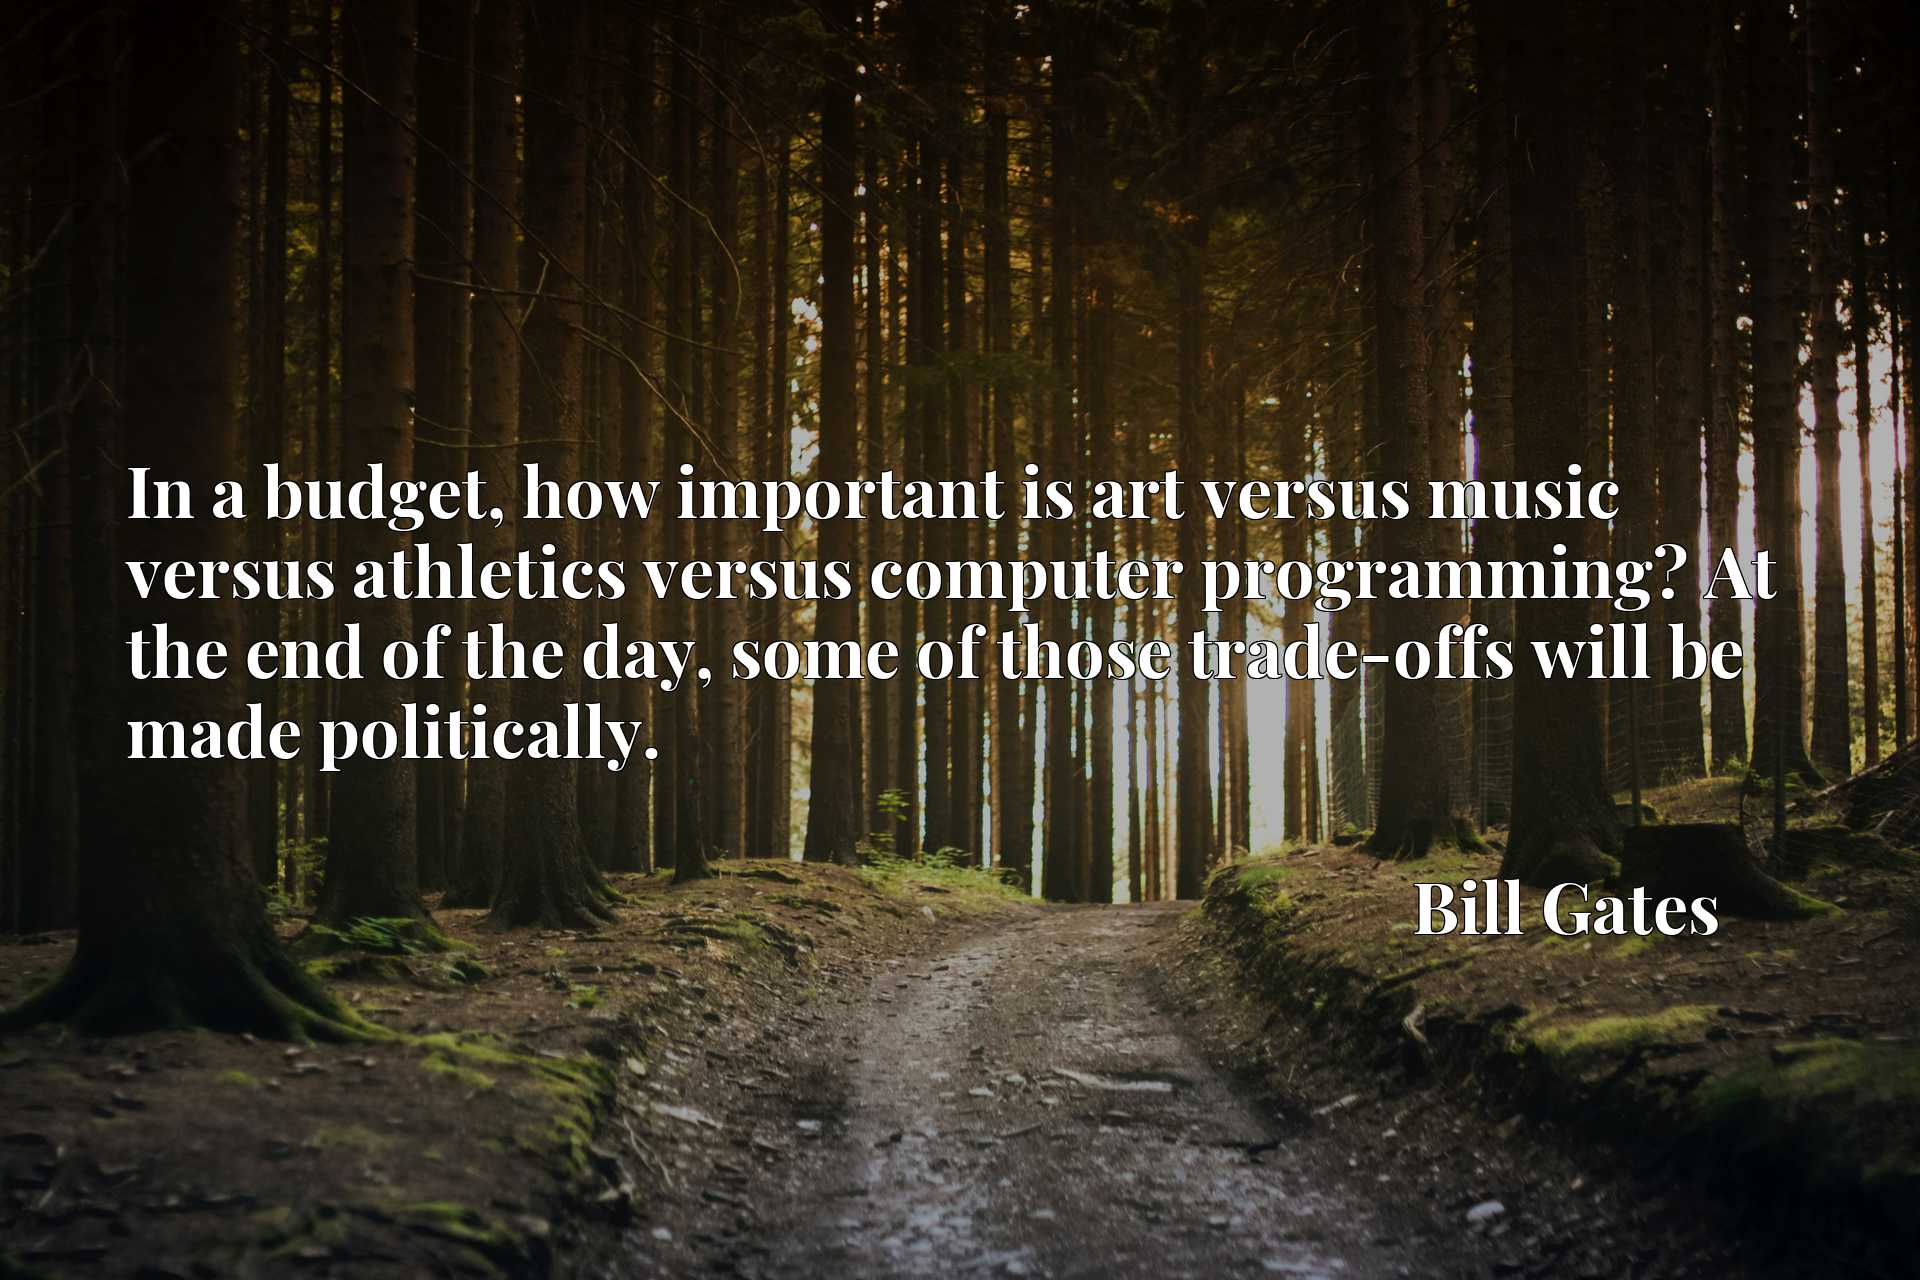 In a budget, how important is art versus music versus athletics versus computer programming? At the end of the day, some of those trade-offs will be made politically.